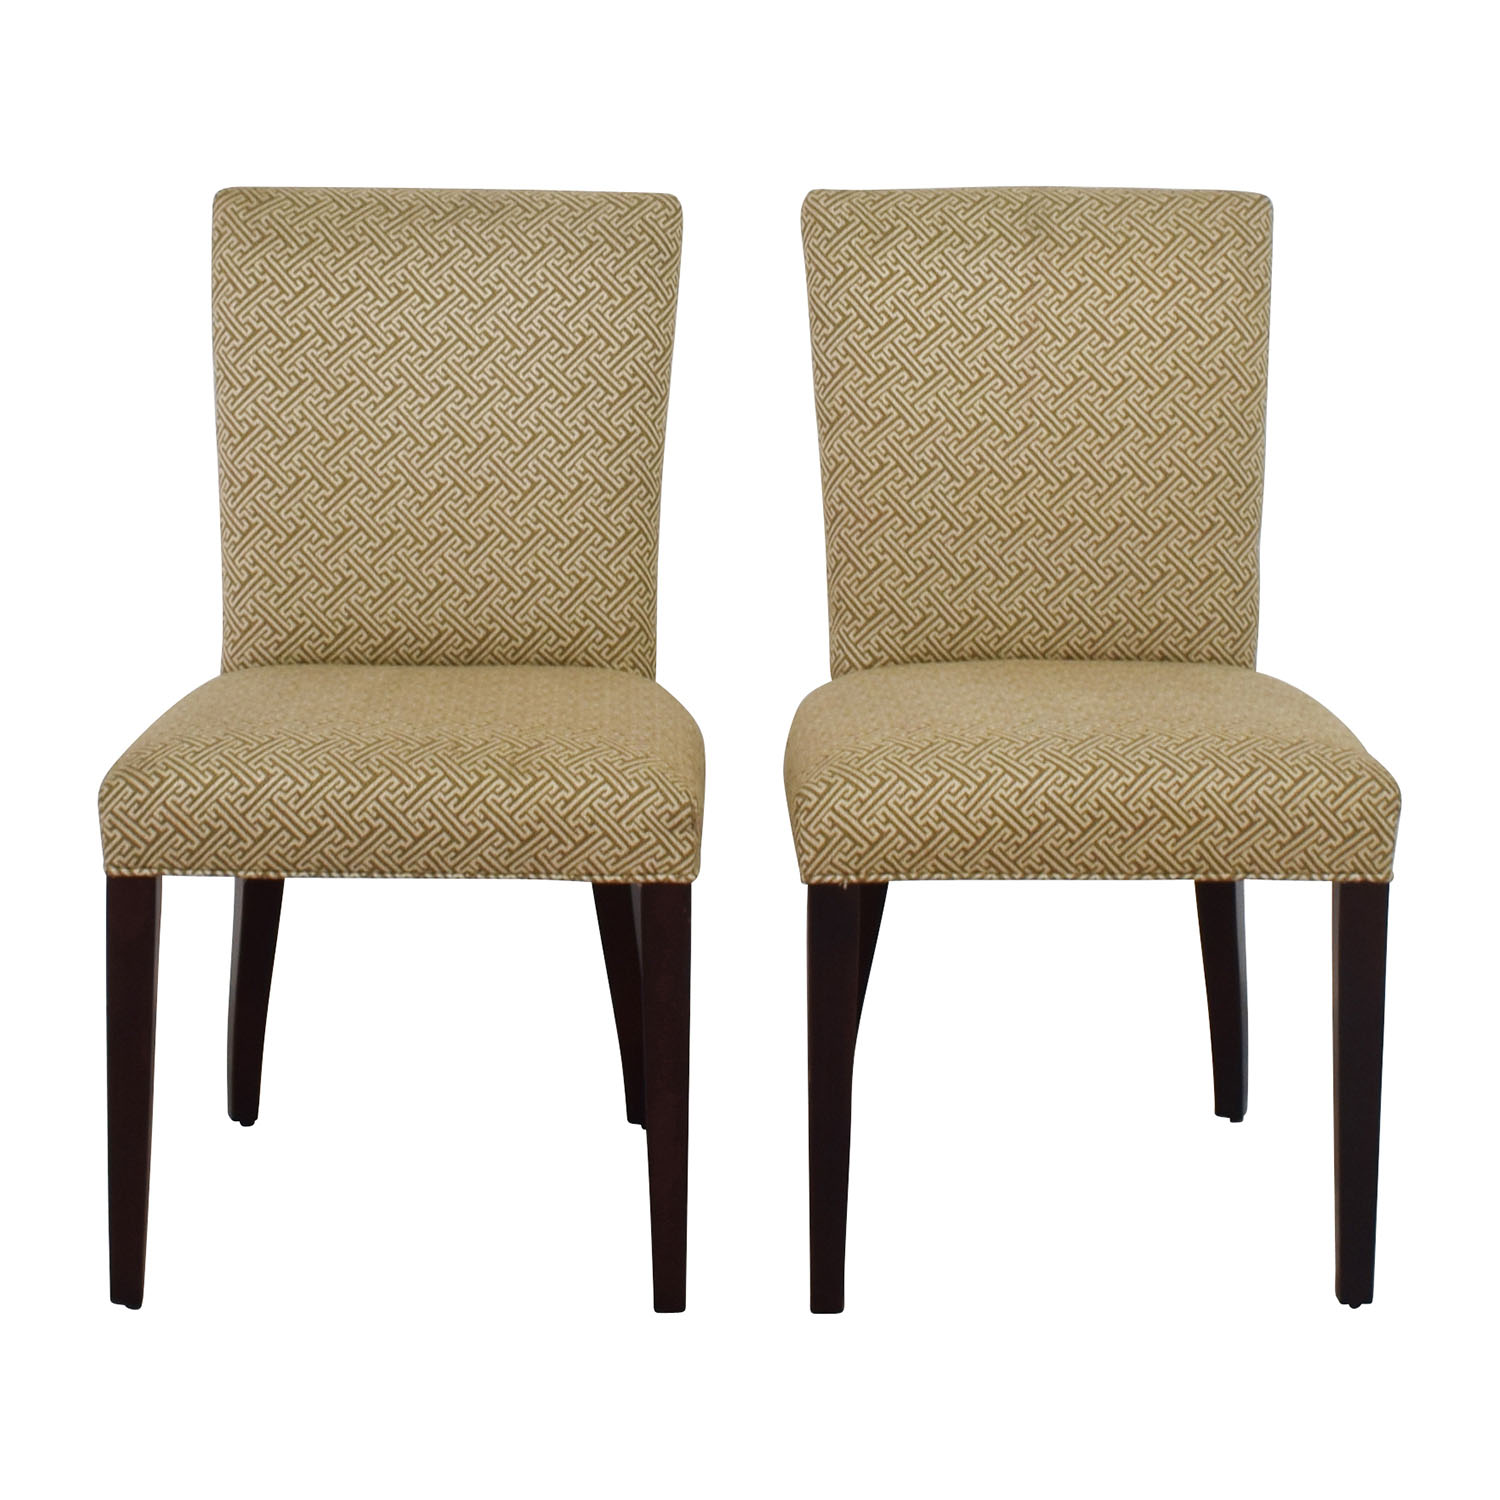 Room & Board Room & Board Ansel Beige Dining Chairs nj